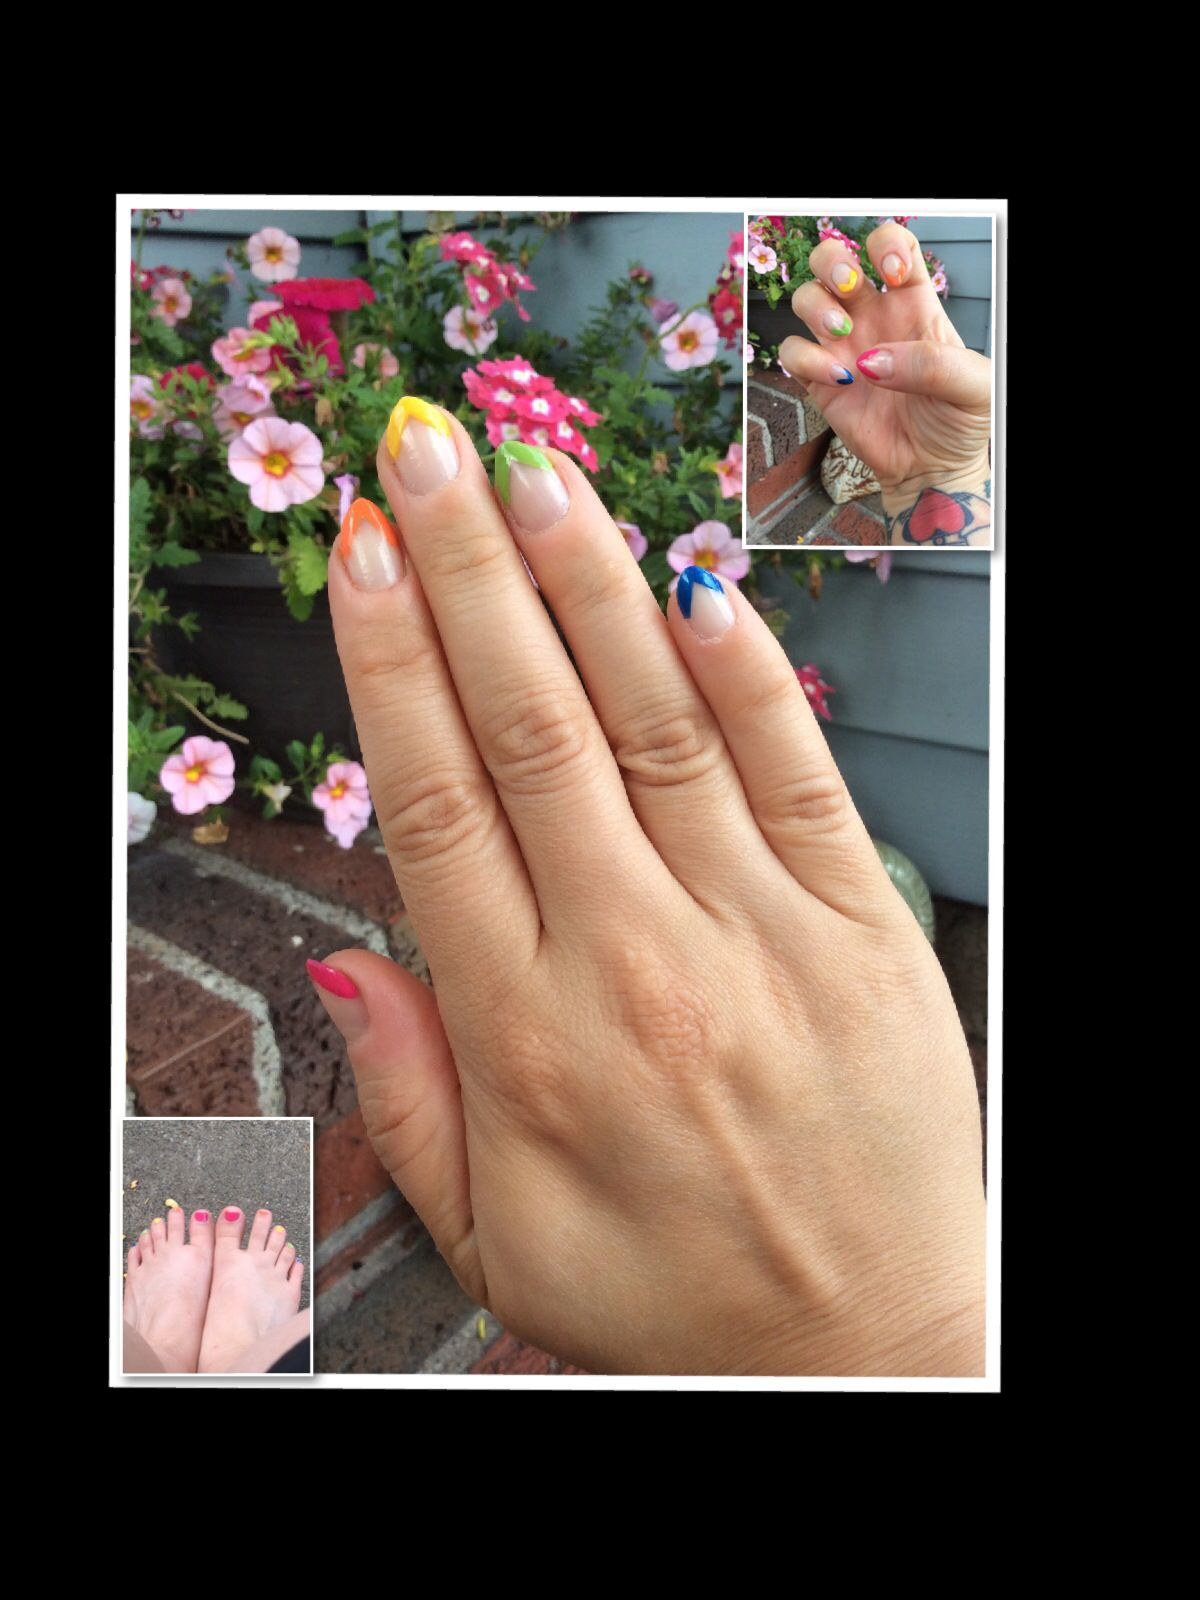 Rainbow French tips v-shaped pointed French tips short stiletto nails short almond shaped nails pride nails matching toes